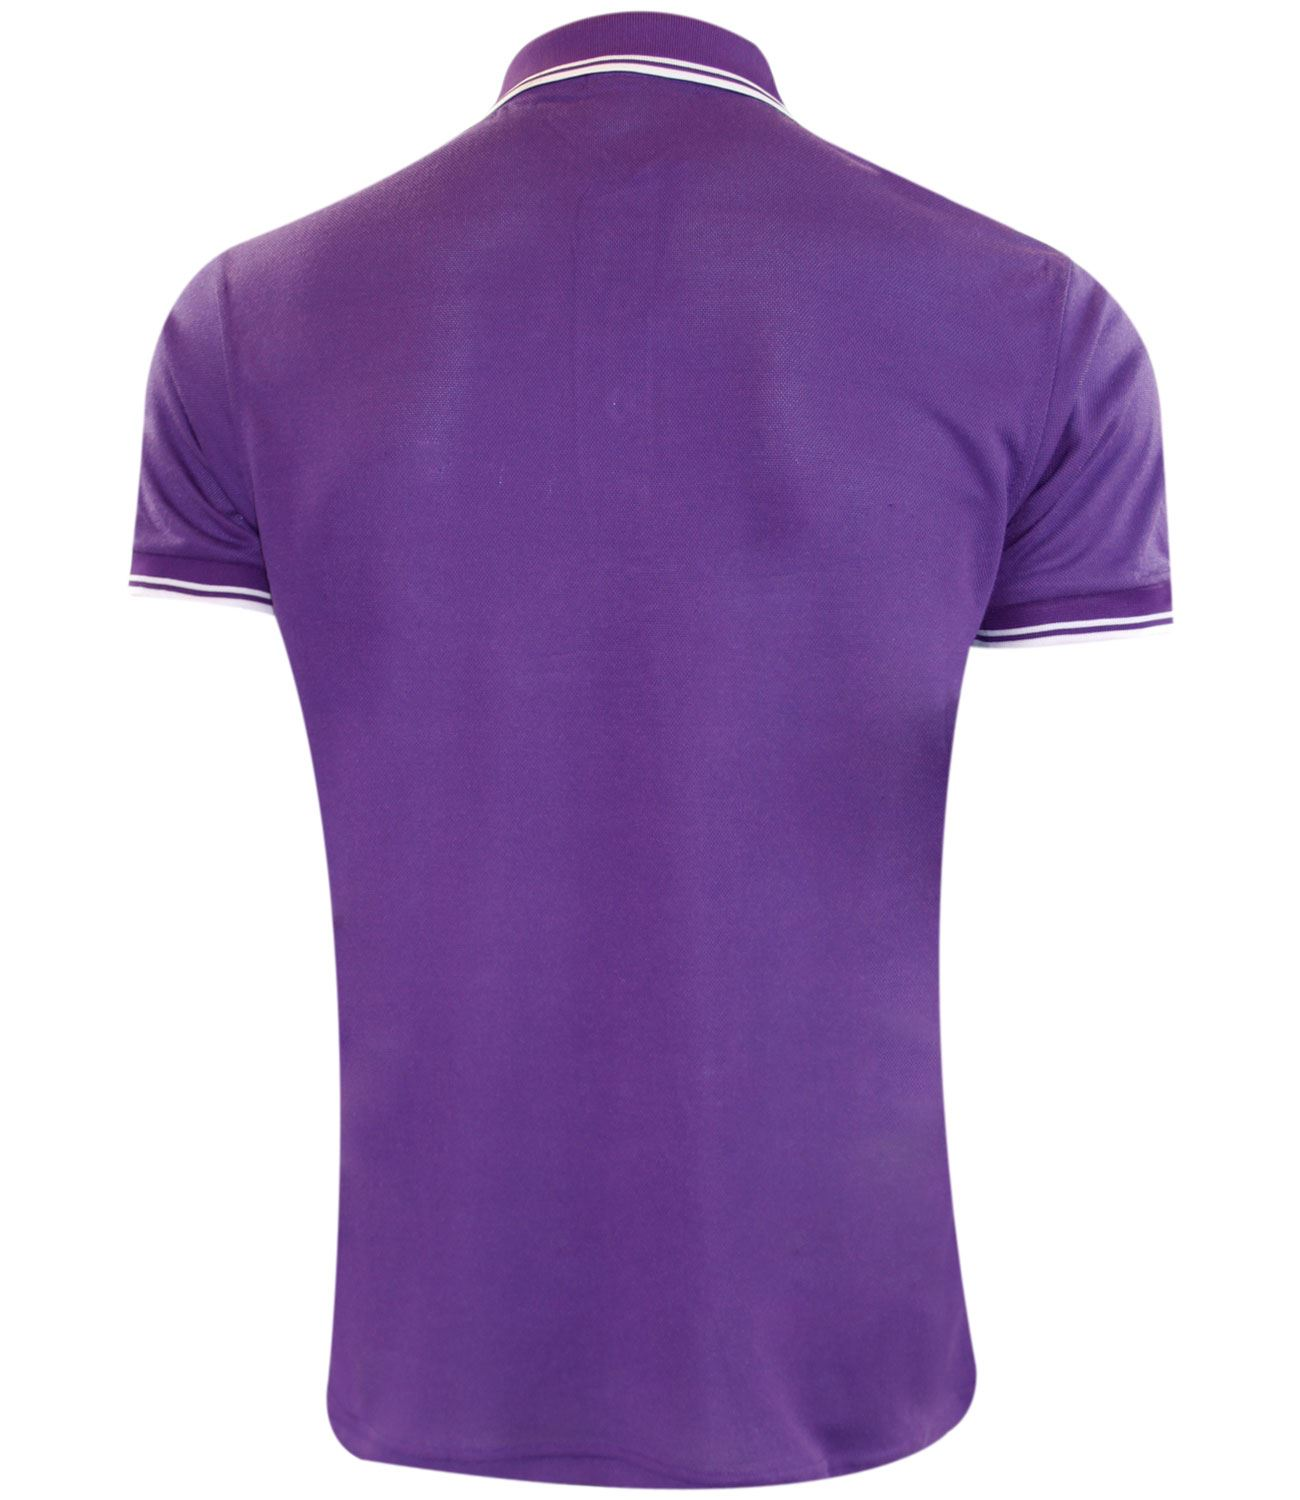 New mens poly cotton pique pocket polo summer ribbed for Men s cotton polo shirts with pocket